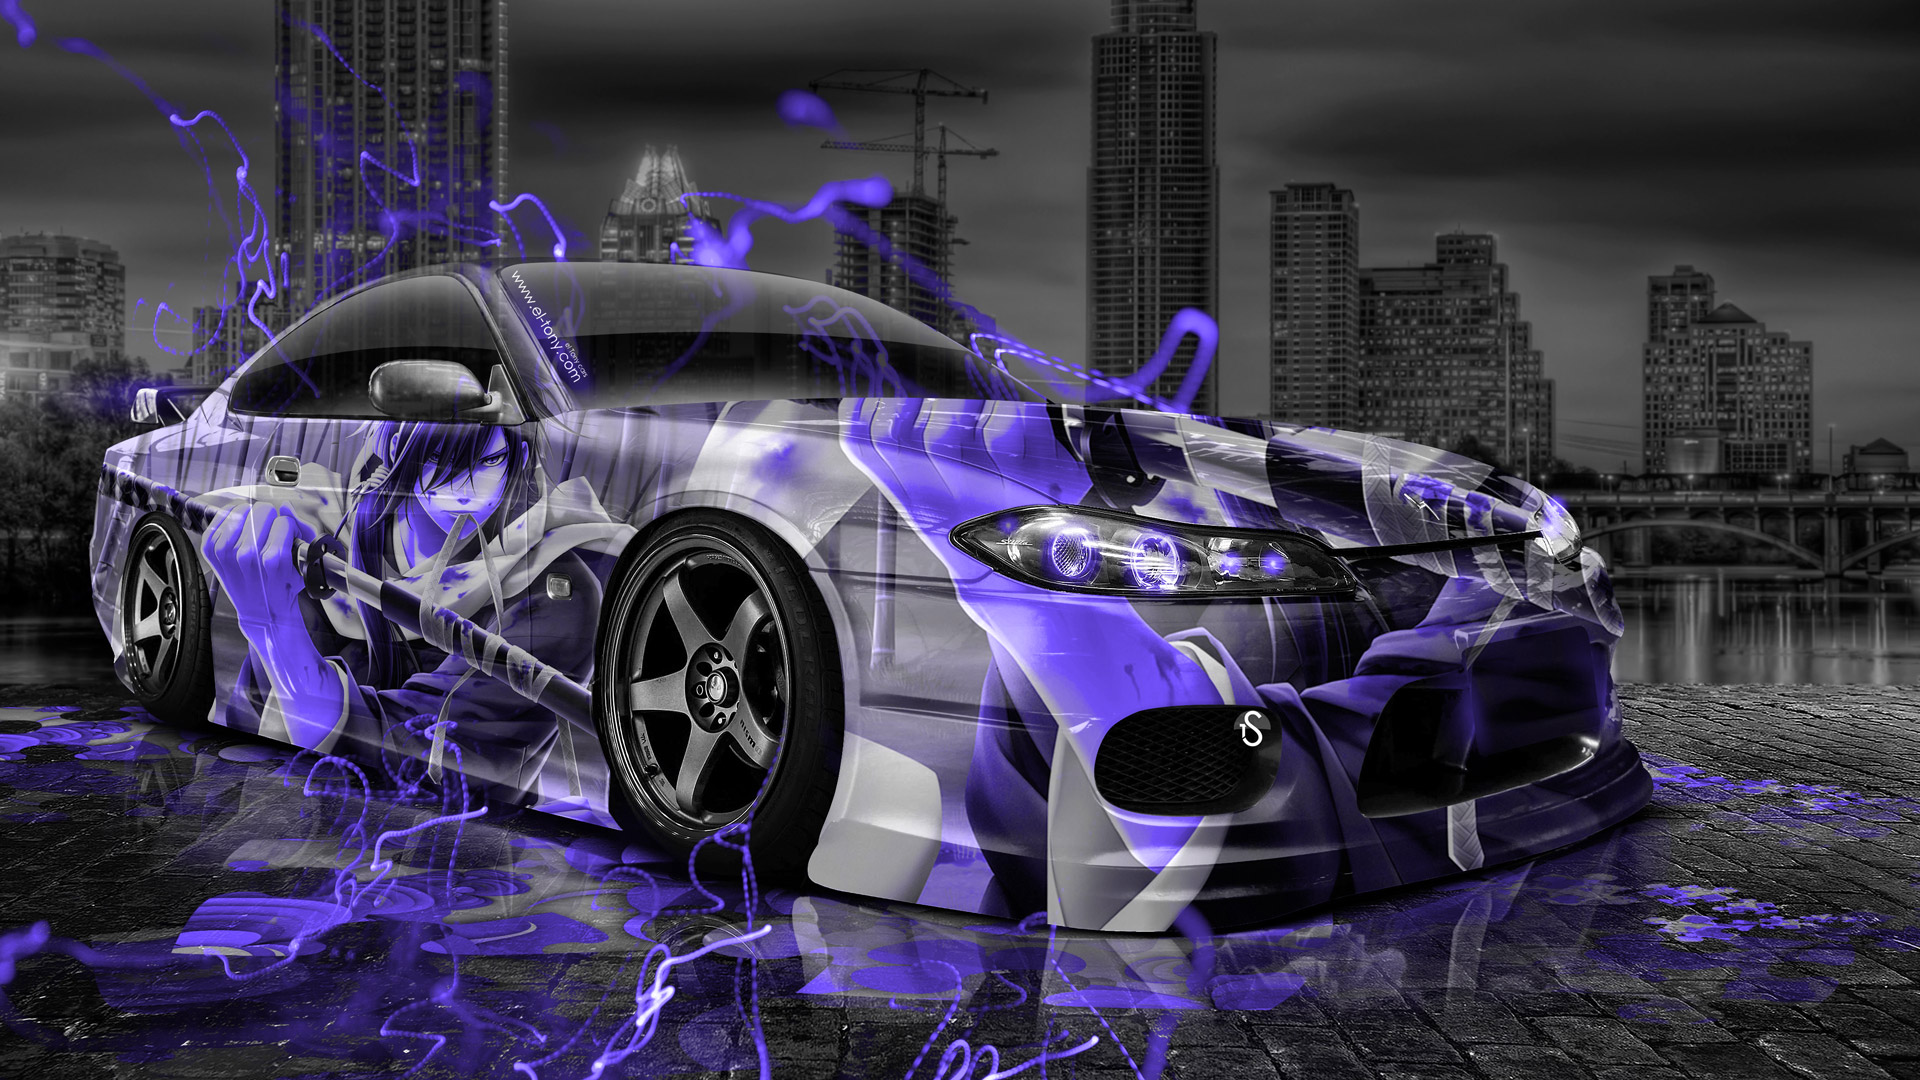 Jet Black Iphone Wallpaper Nissan Silvia S15 Jdm Anime Aerography City Car 2015 El Tony